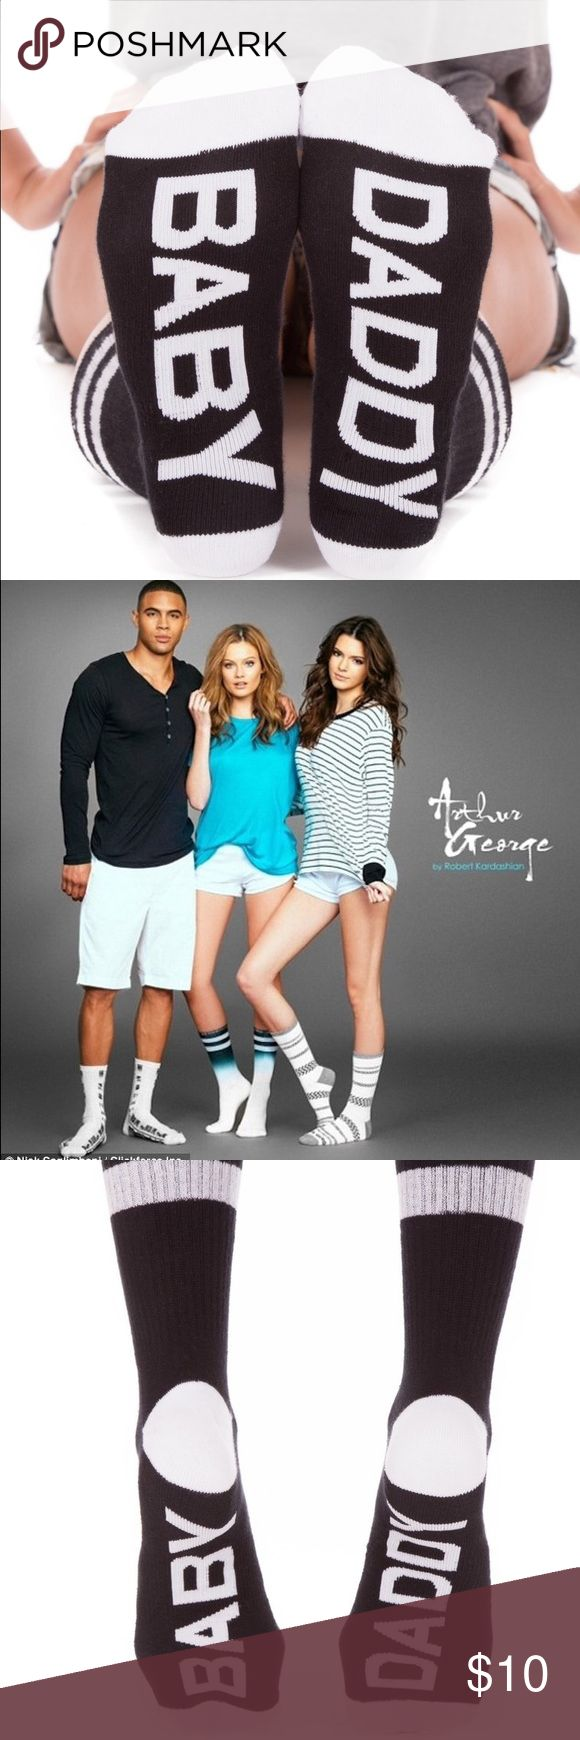 Funky Socks - Arthur George by Robert Kardashian Arthur George socks are famous for their comfort, style, and unapologetic attitude.  Express yourself!!  NWT  - size 7-12 - unisex Kardashian Kollection Underwear & Socks Casual Socks